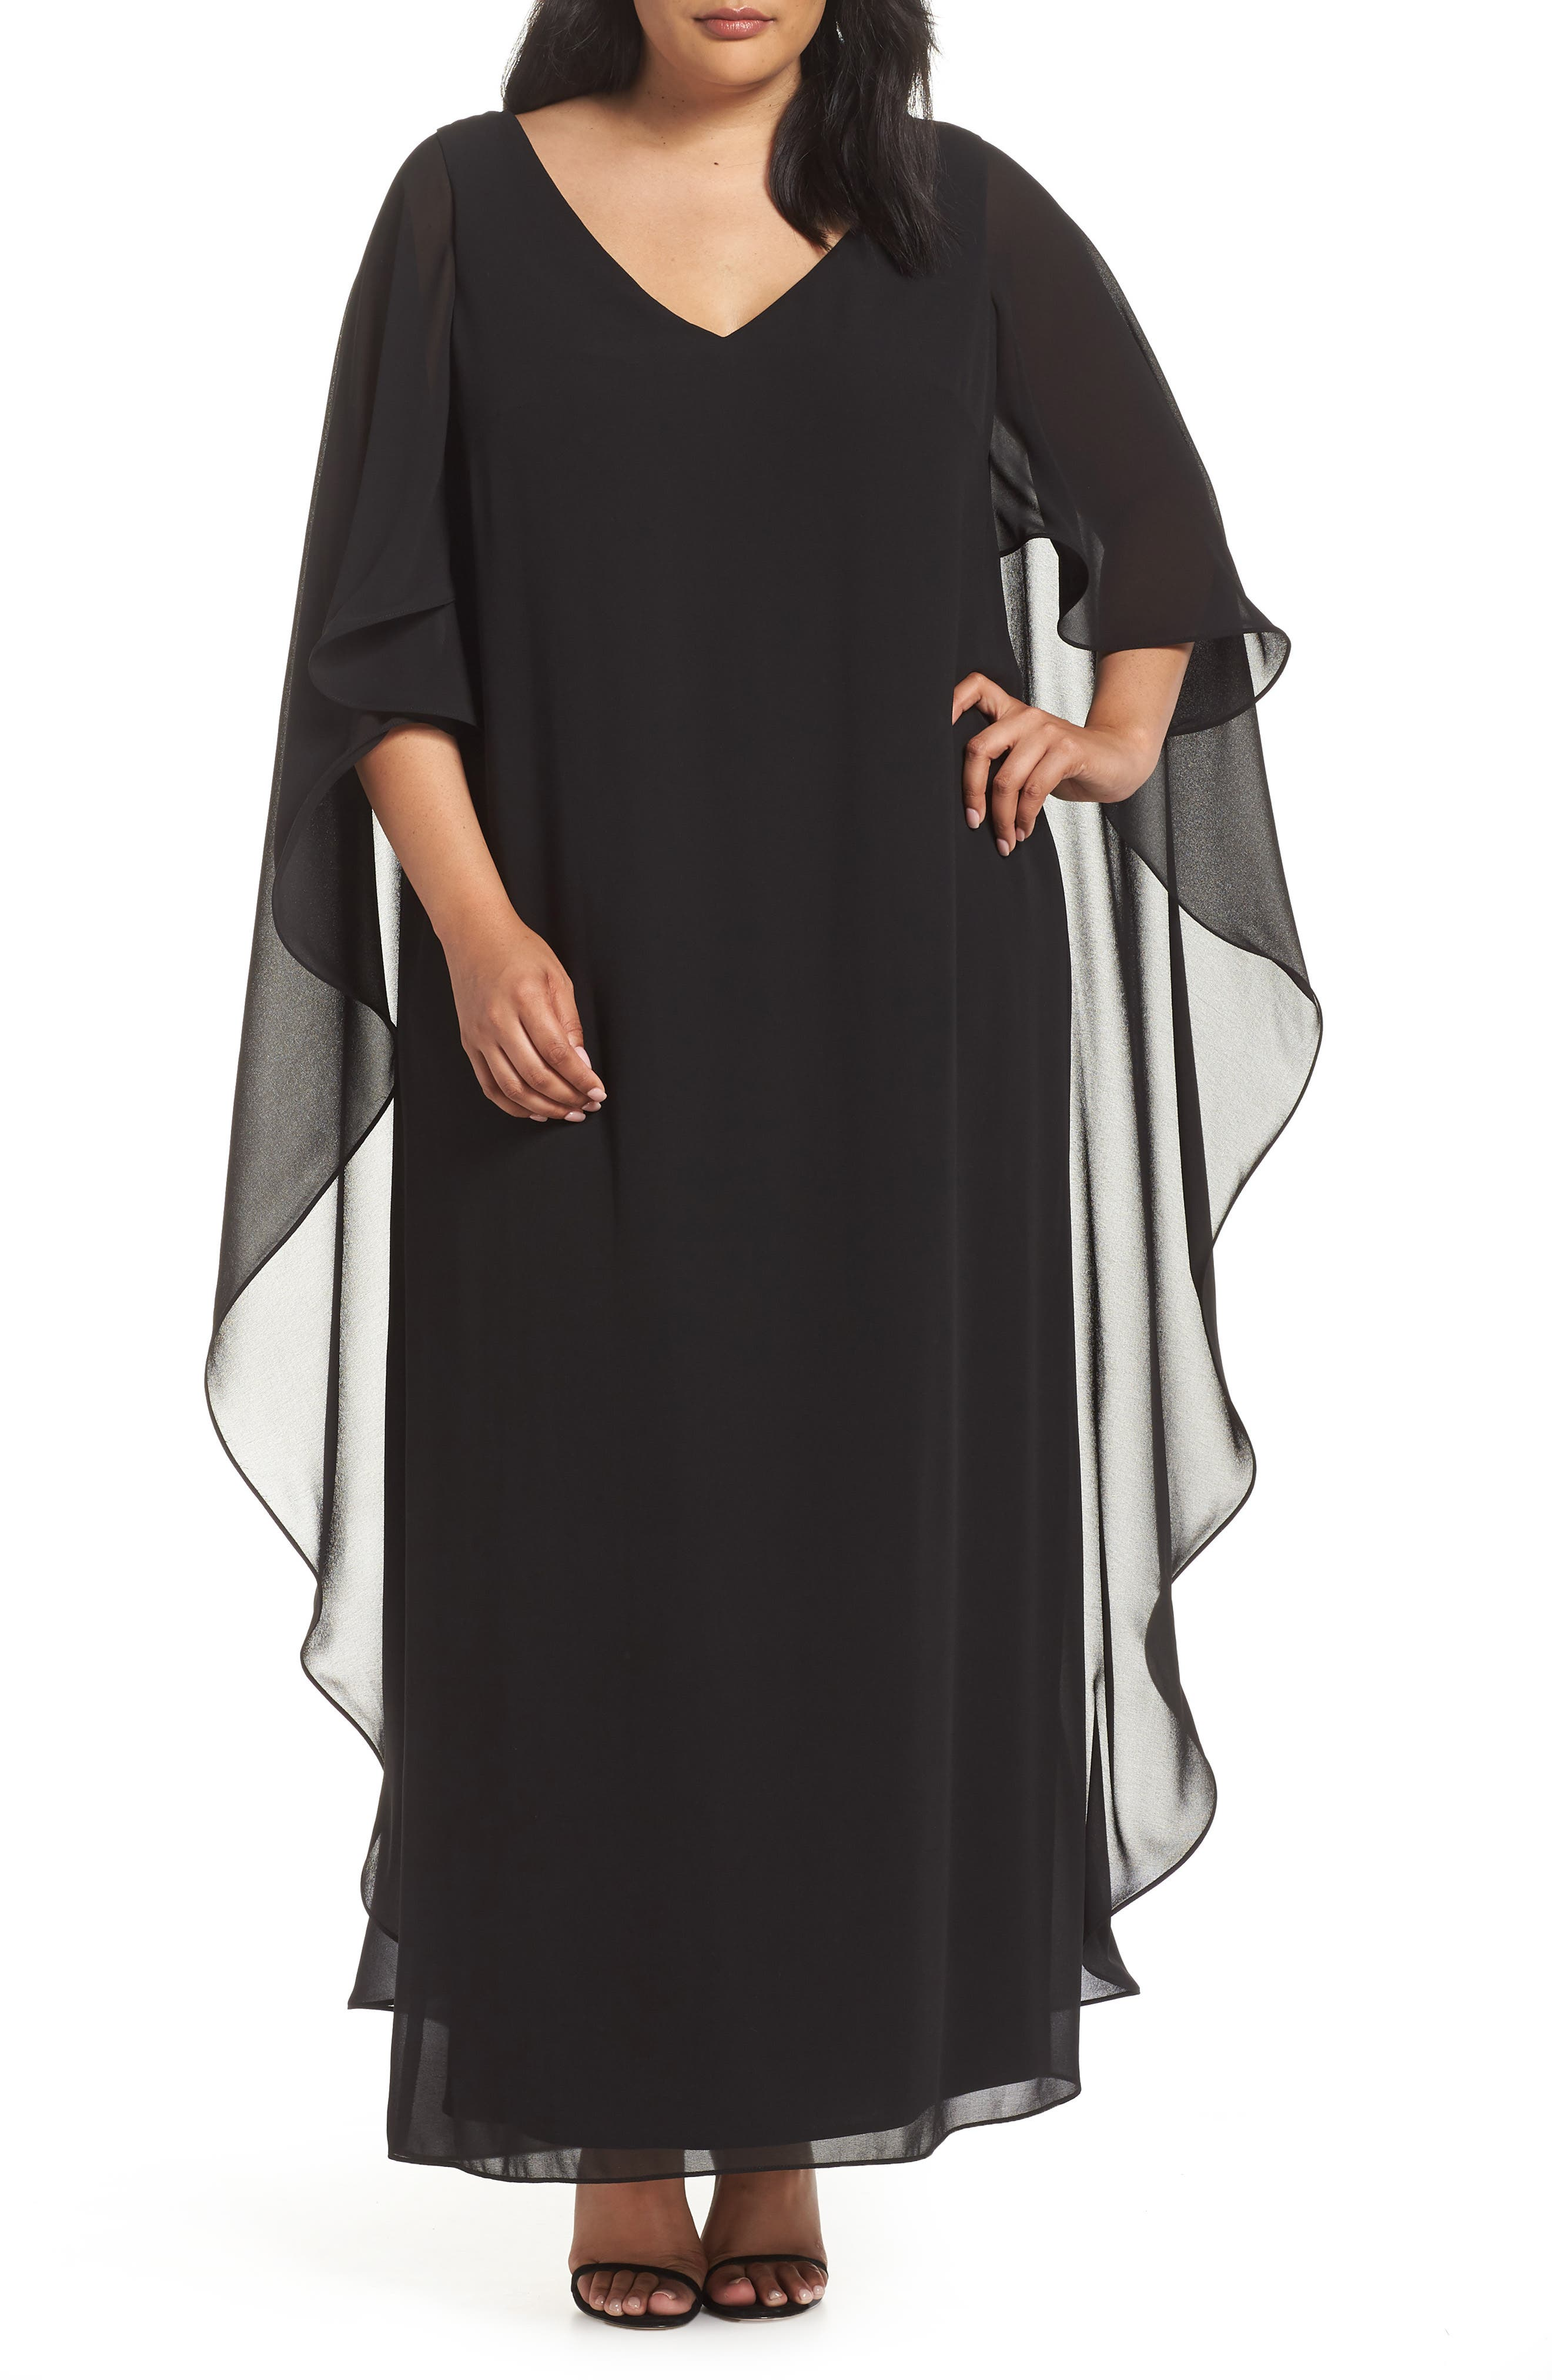 A drapey chiffon overlay romances this V-neck gown boasting night-out elegance. Style Name: Xscape Cape Overlay Chiffon Gown (Plus Size). Style Number: 5735079. Available in stores.